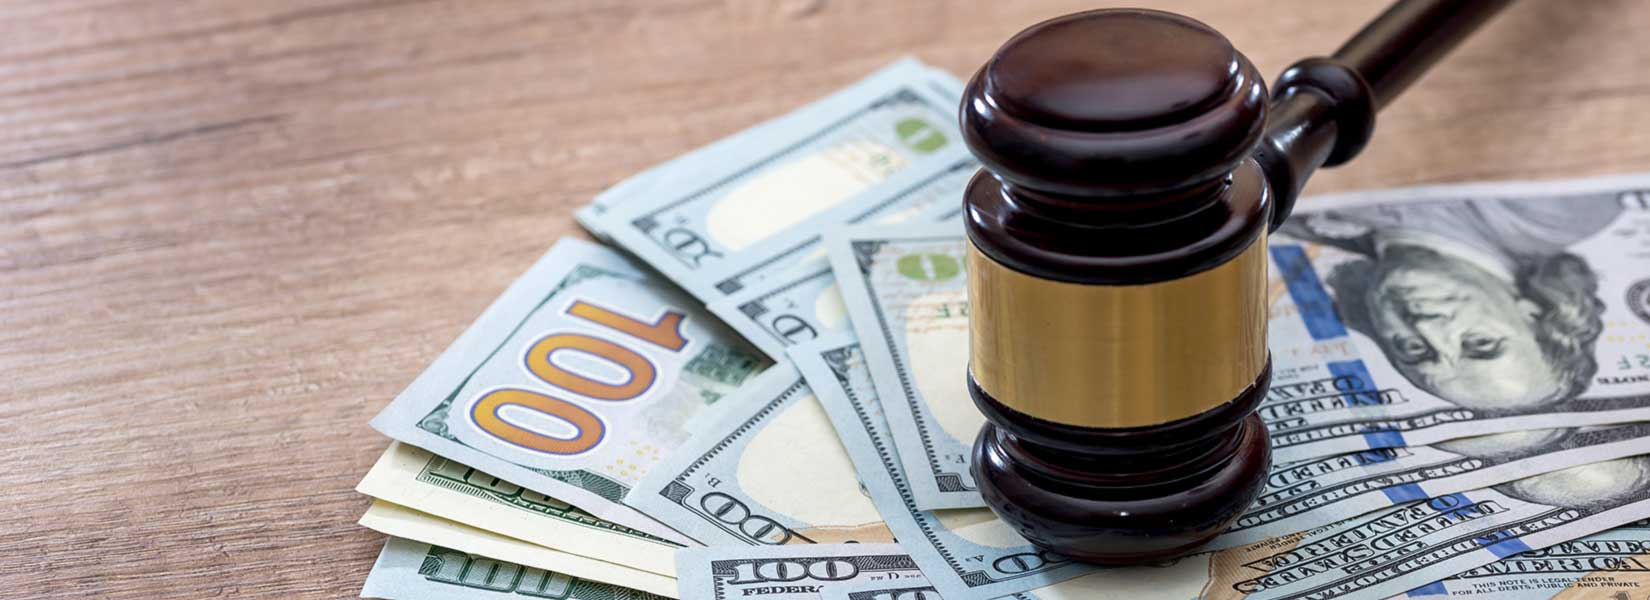 What Type of Damages Can a Surprise Auto Accident Lawyer Recover